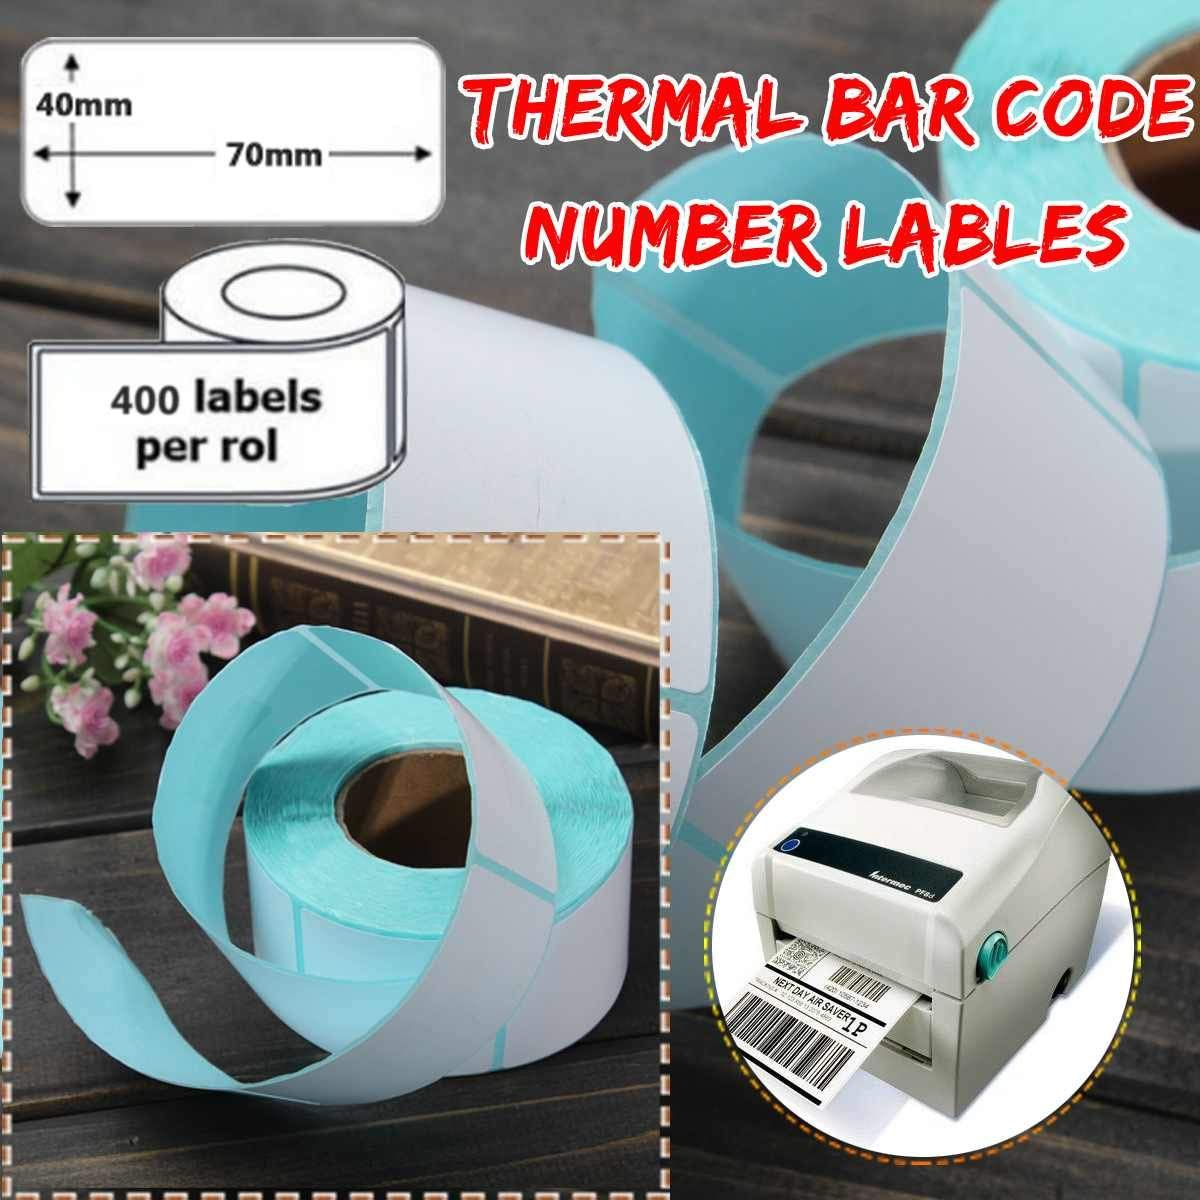 400PCS Printing Label 40x70mm Barcode Number Thermal Adhesive Paper Sticker for Printer Supplies by Beizuu (Image #1)